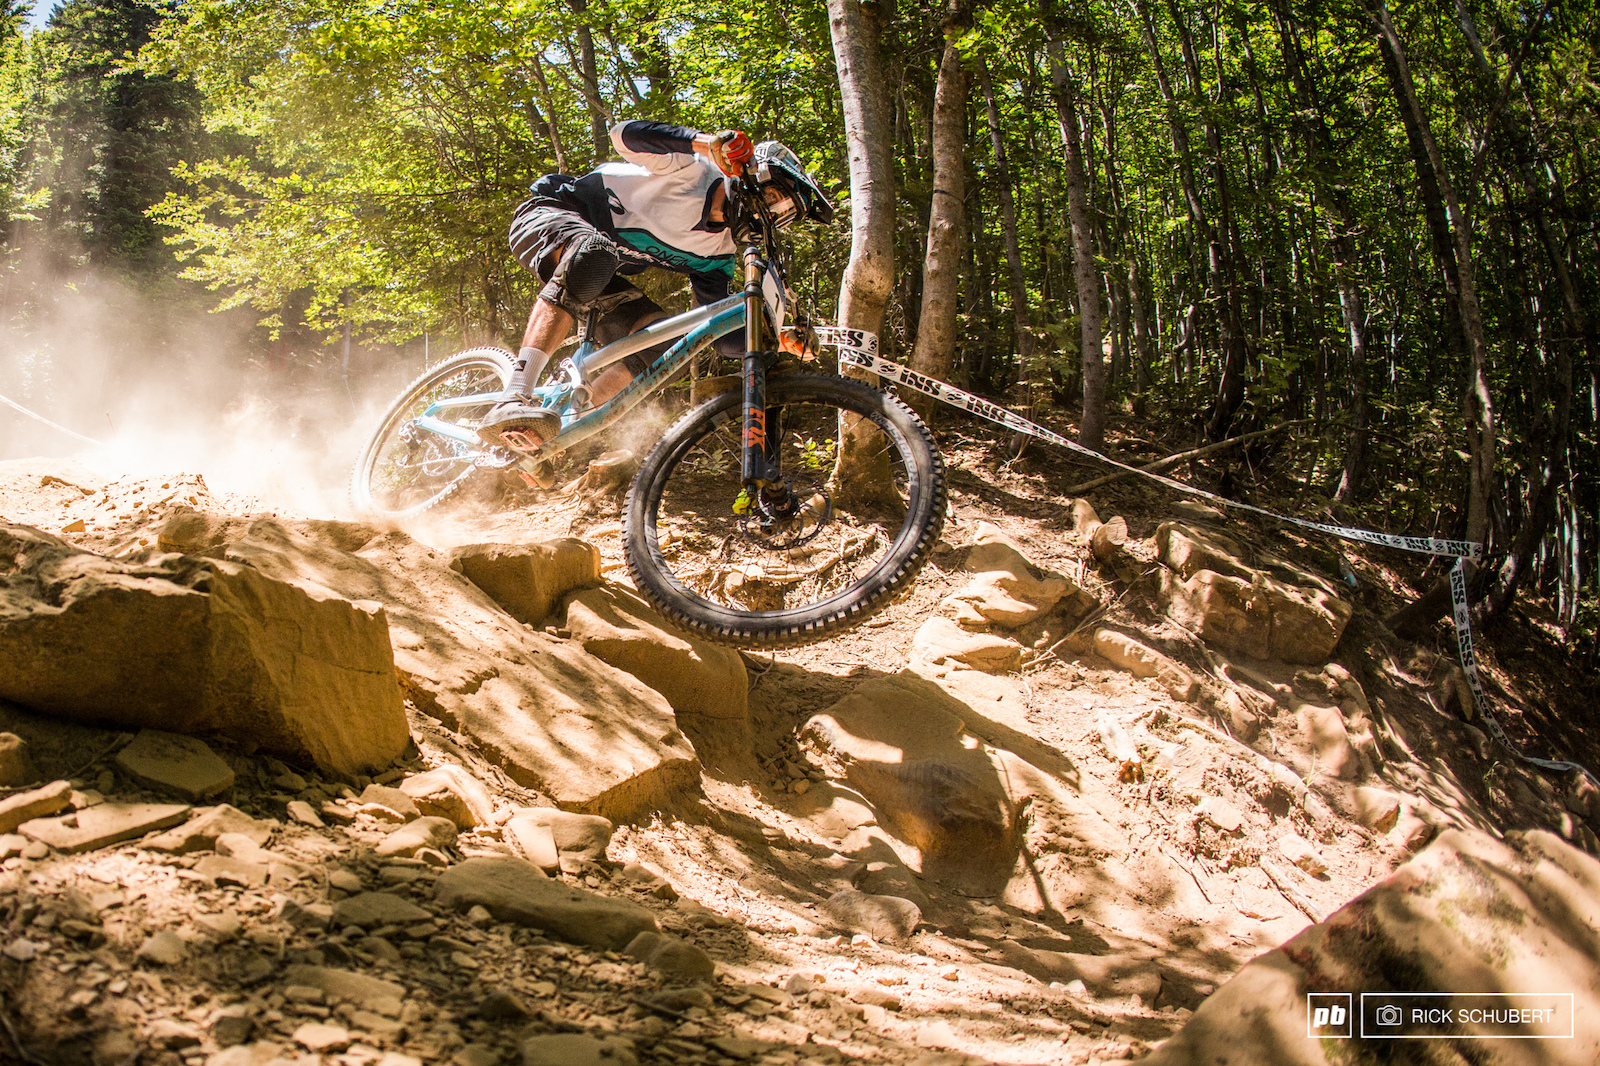 Riders were fighting the dust all weekend